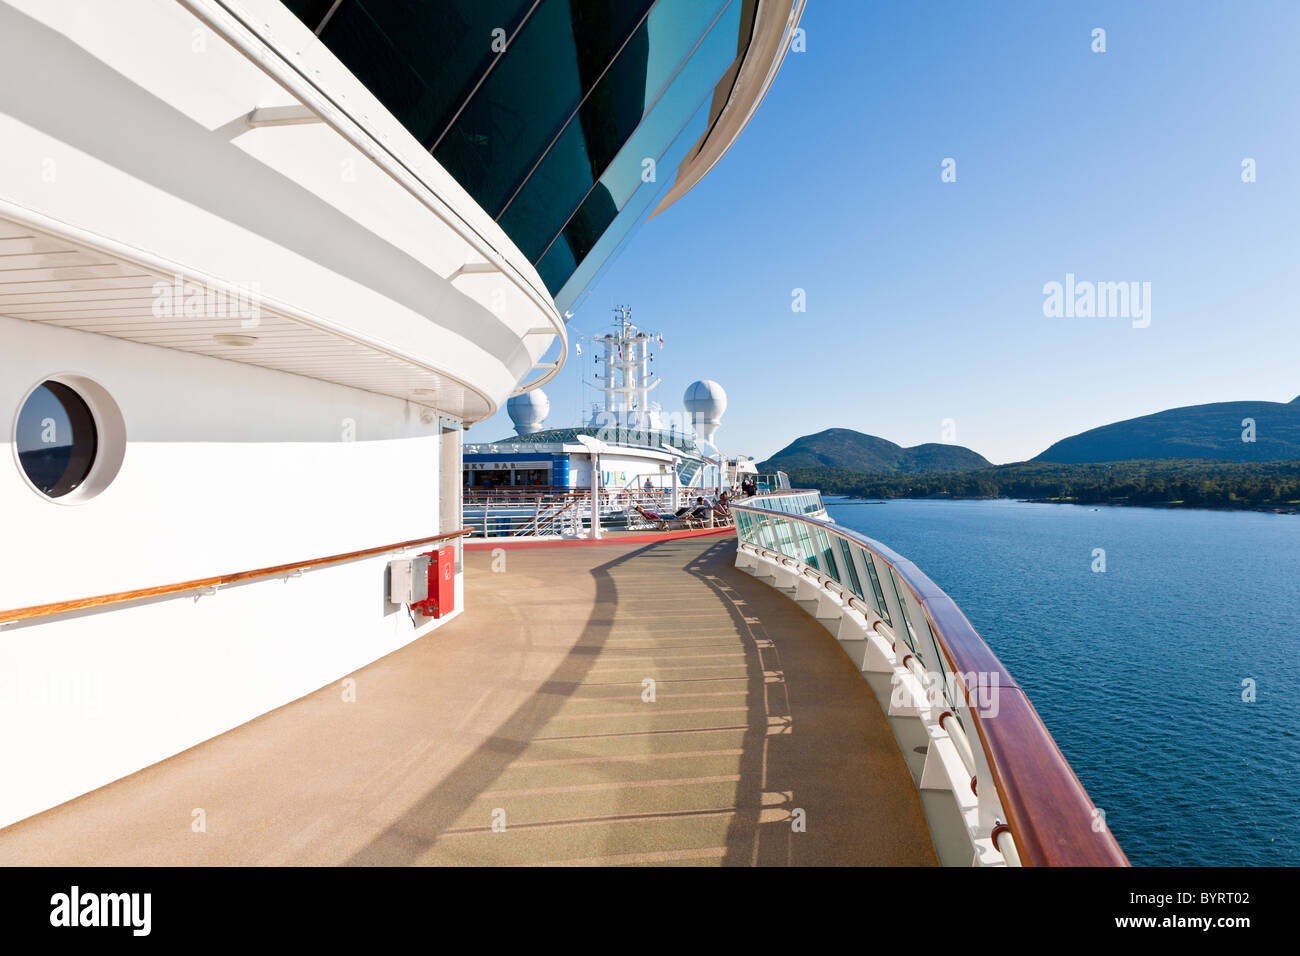 Deck of Royal Caribbean's Jewel of the Seas cruise ship at port in Bar Harbor, Maine - Stock Image